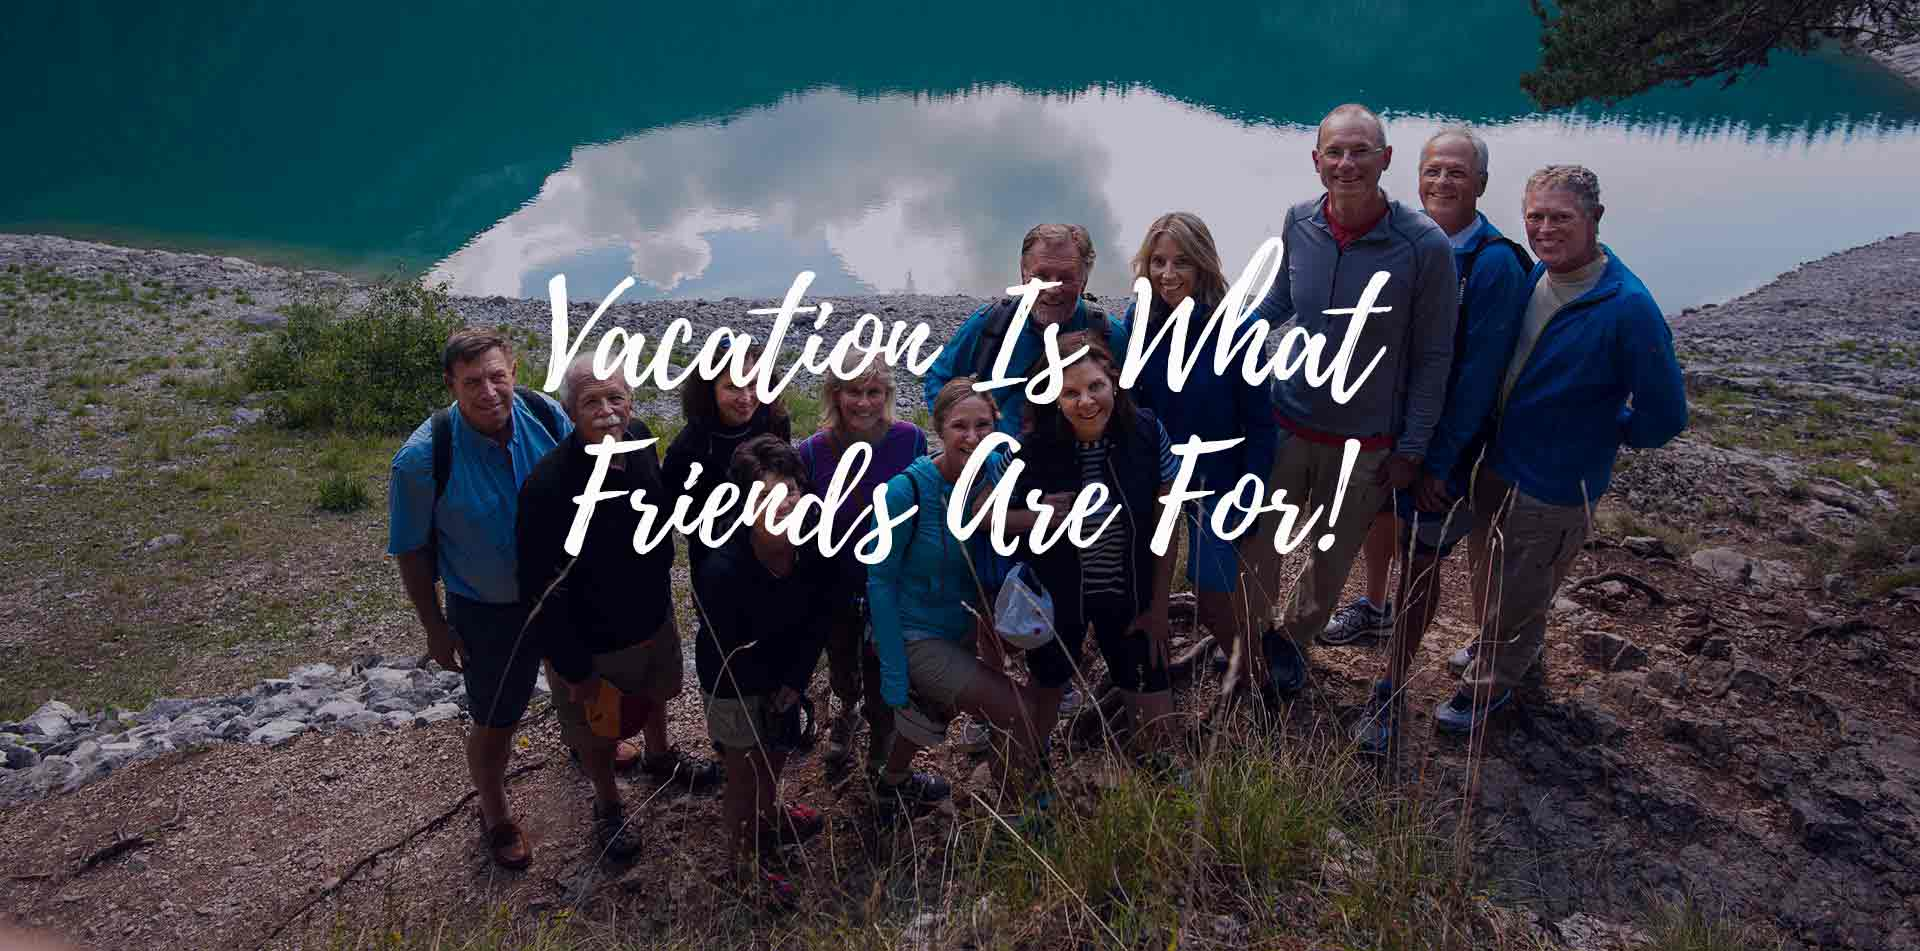 Europe group of travelers on nature trail near a lake Vacation Is What Friends Are For - luxury vacation destinations